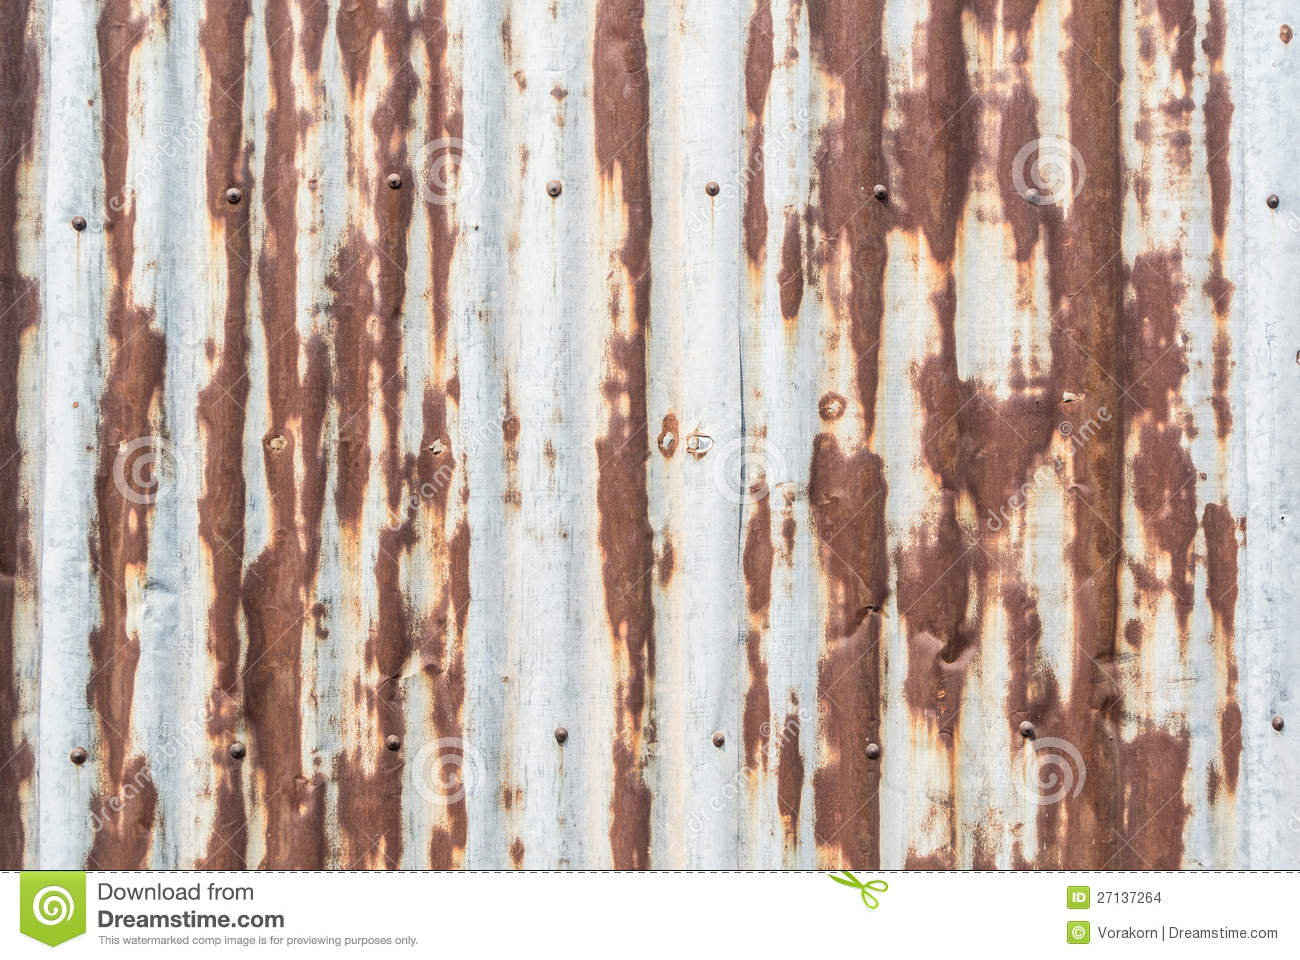 Rustic Galvanized Sheet Wall With Nail Stock Photo - Image ...